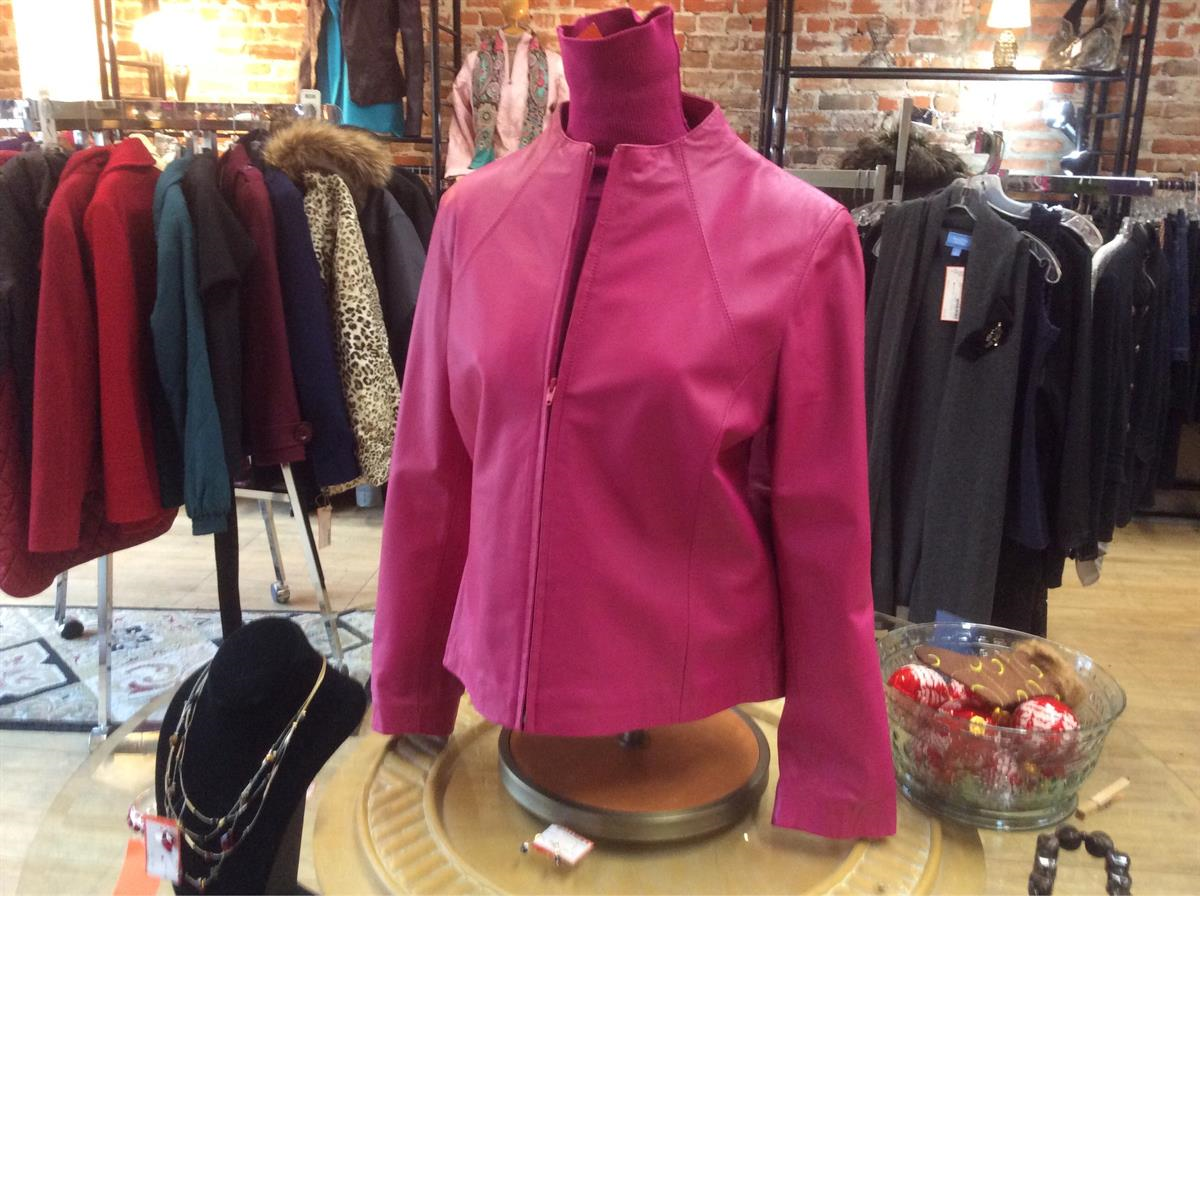 Consigned women's leather jacket and top at Refashion Consigned Furniture and Clothing